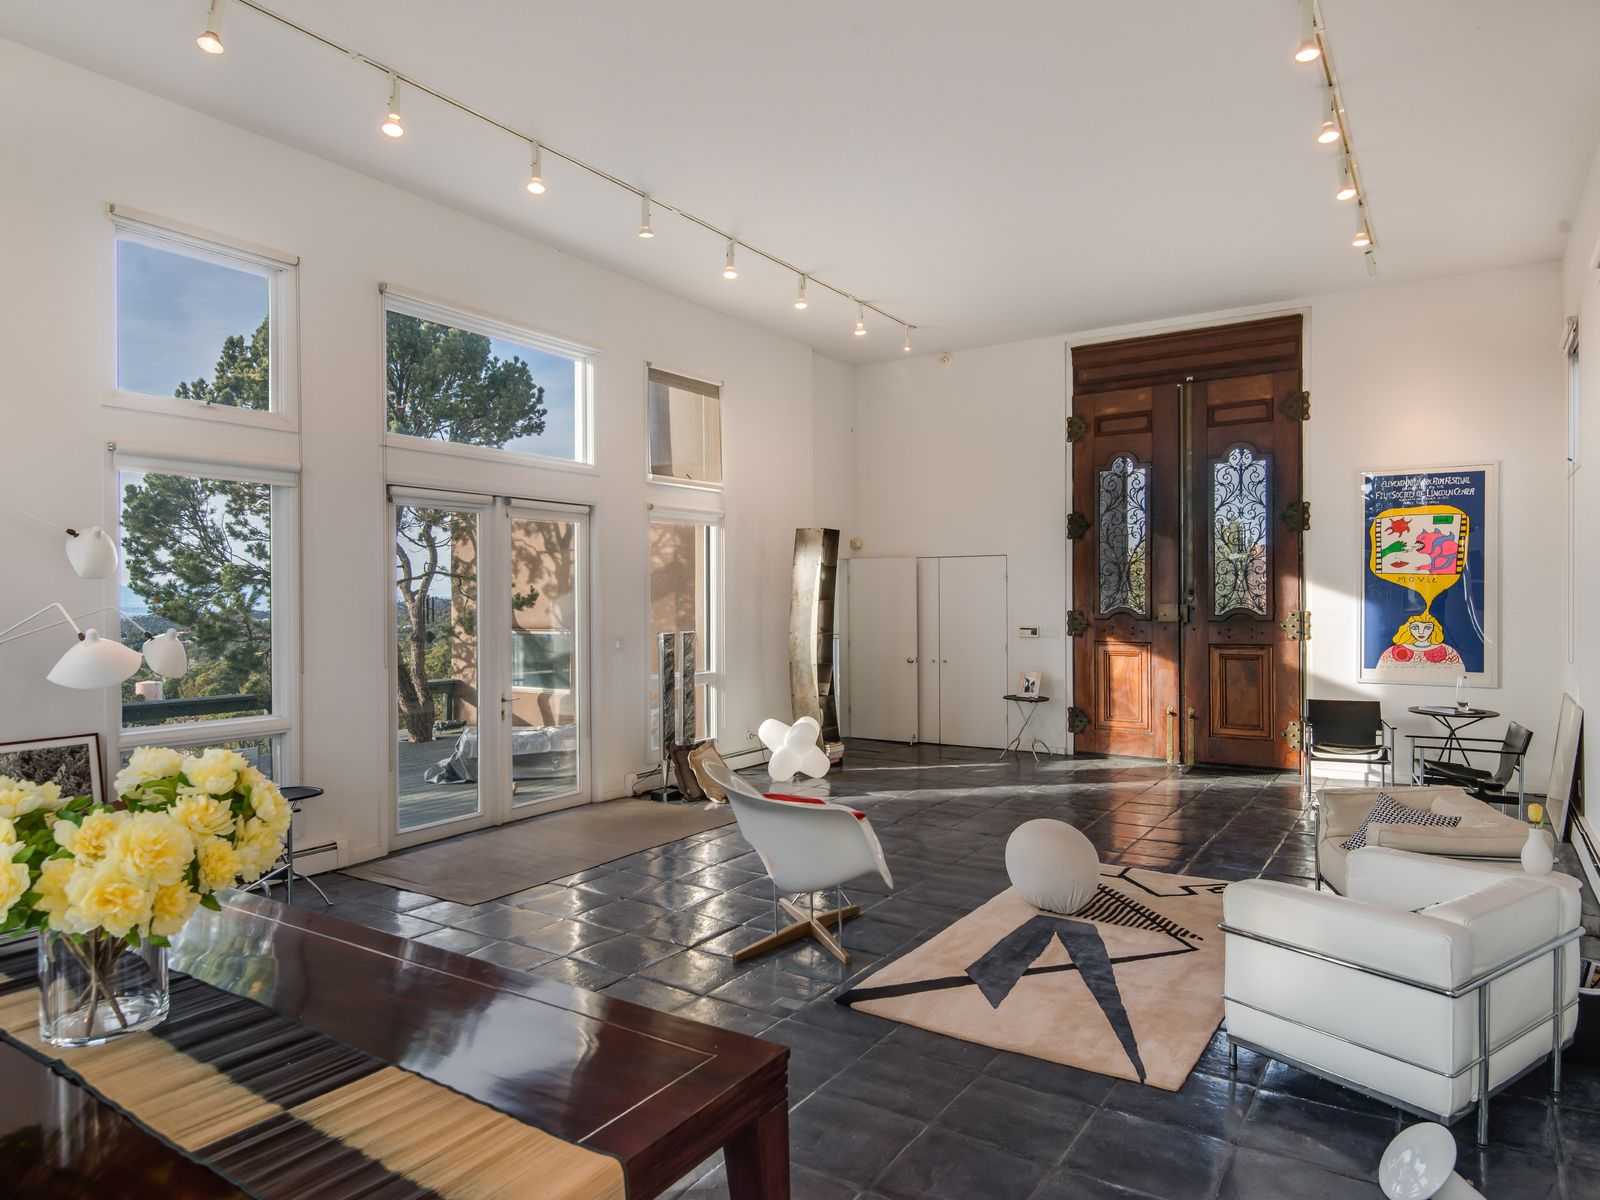 43 Calimo Circle, Santa Fe NM Single Family Home - Santa Fe Real Estate